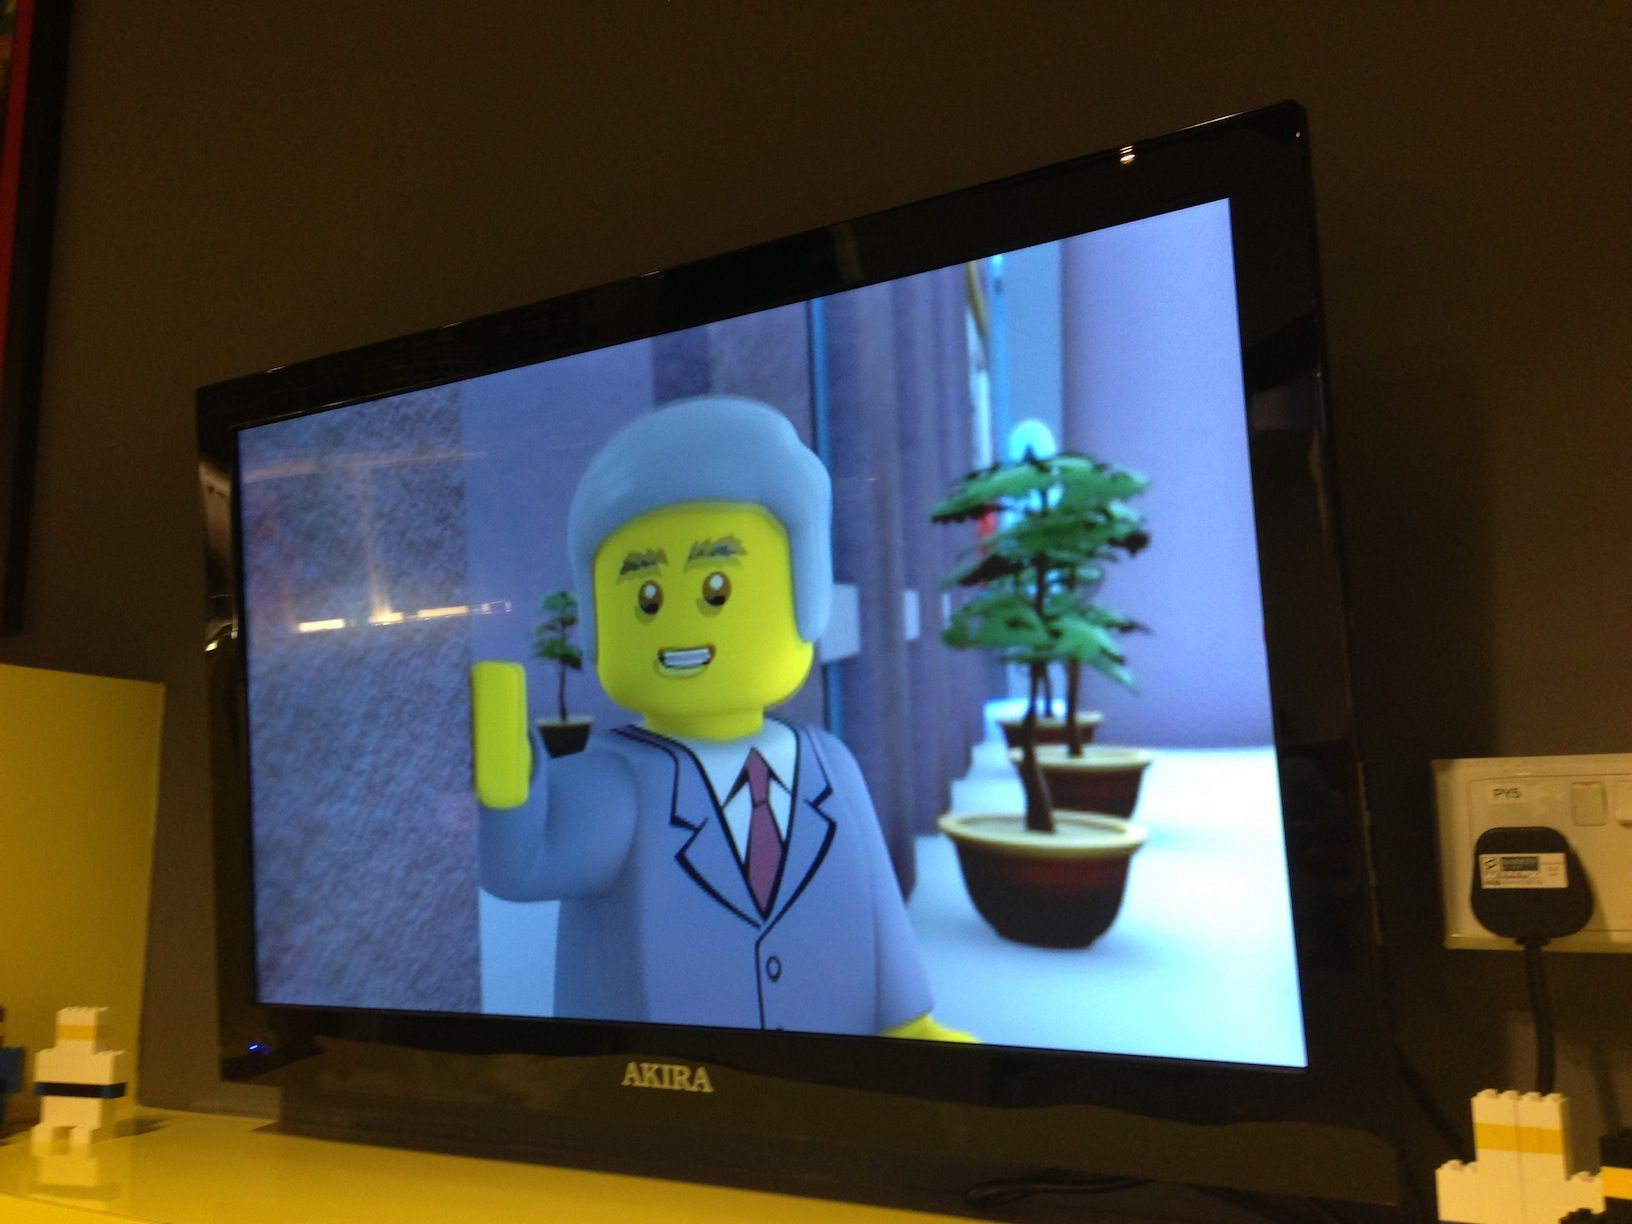 Lego TV - Bucks'n'cubes